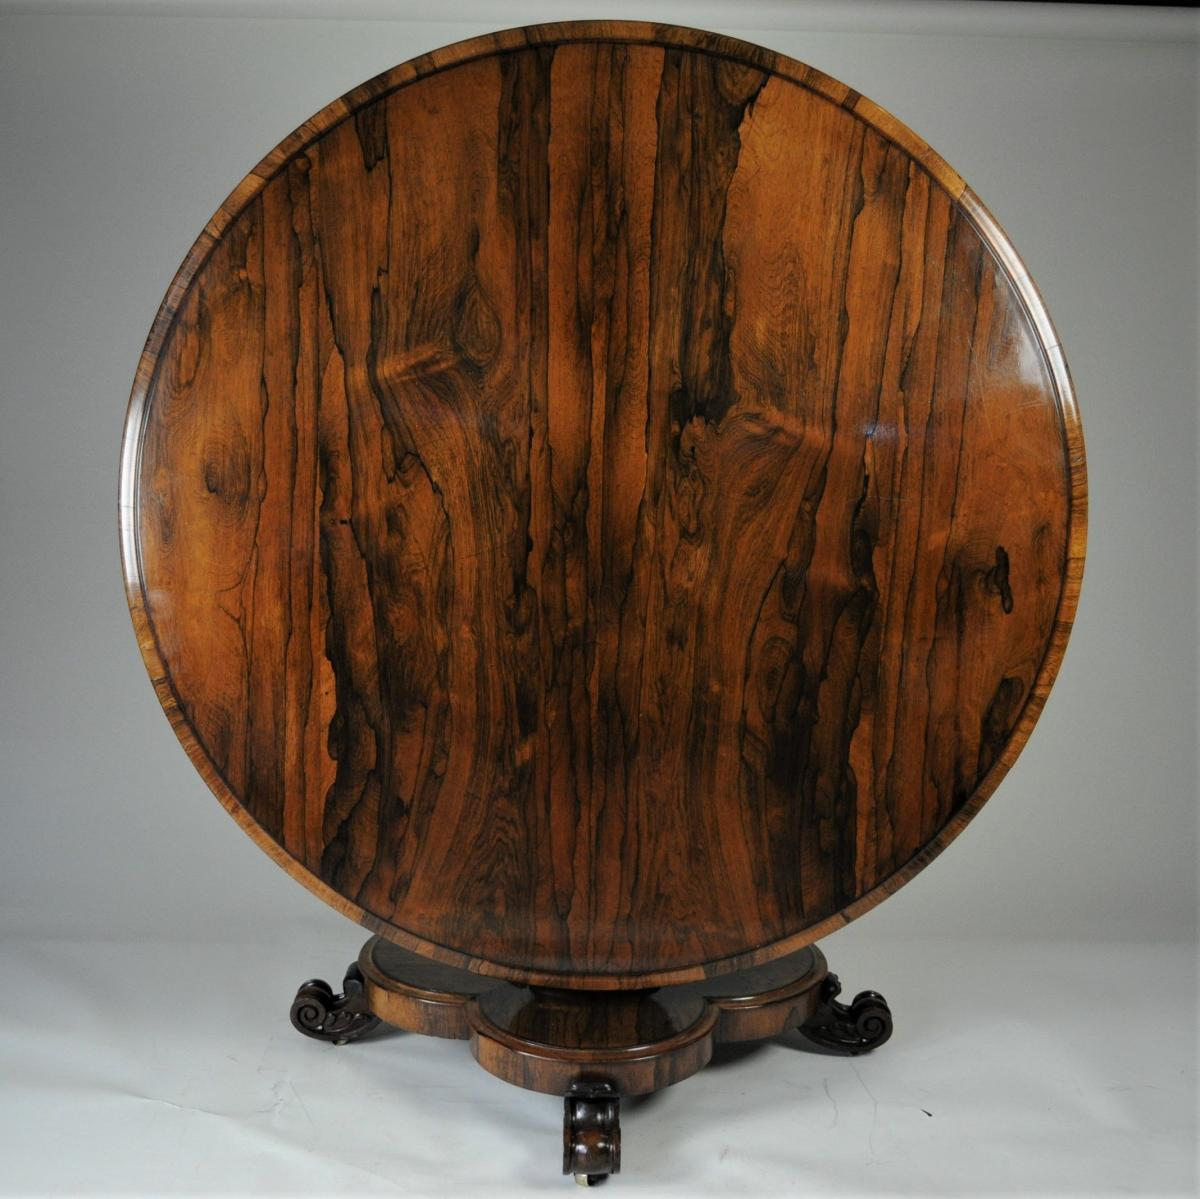 Large Circular Gonçalo Alves Breakfast Table